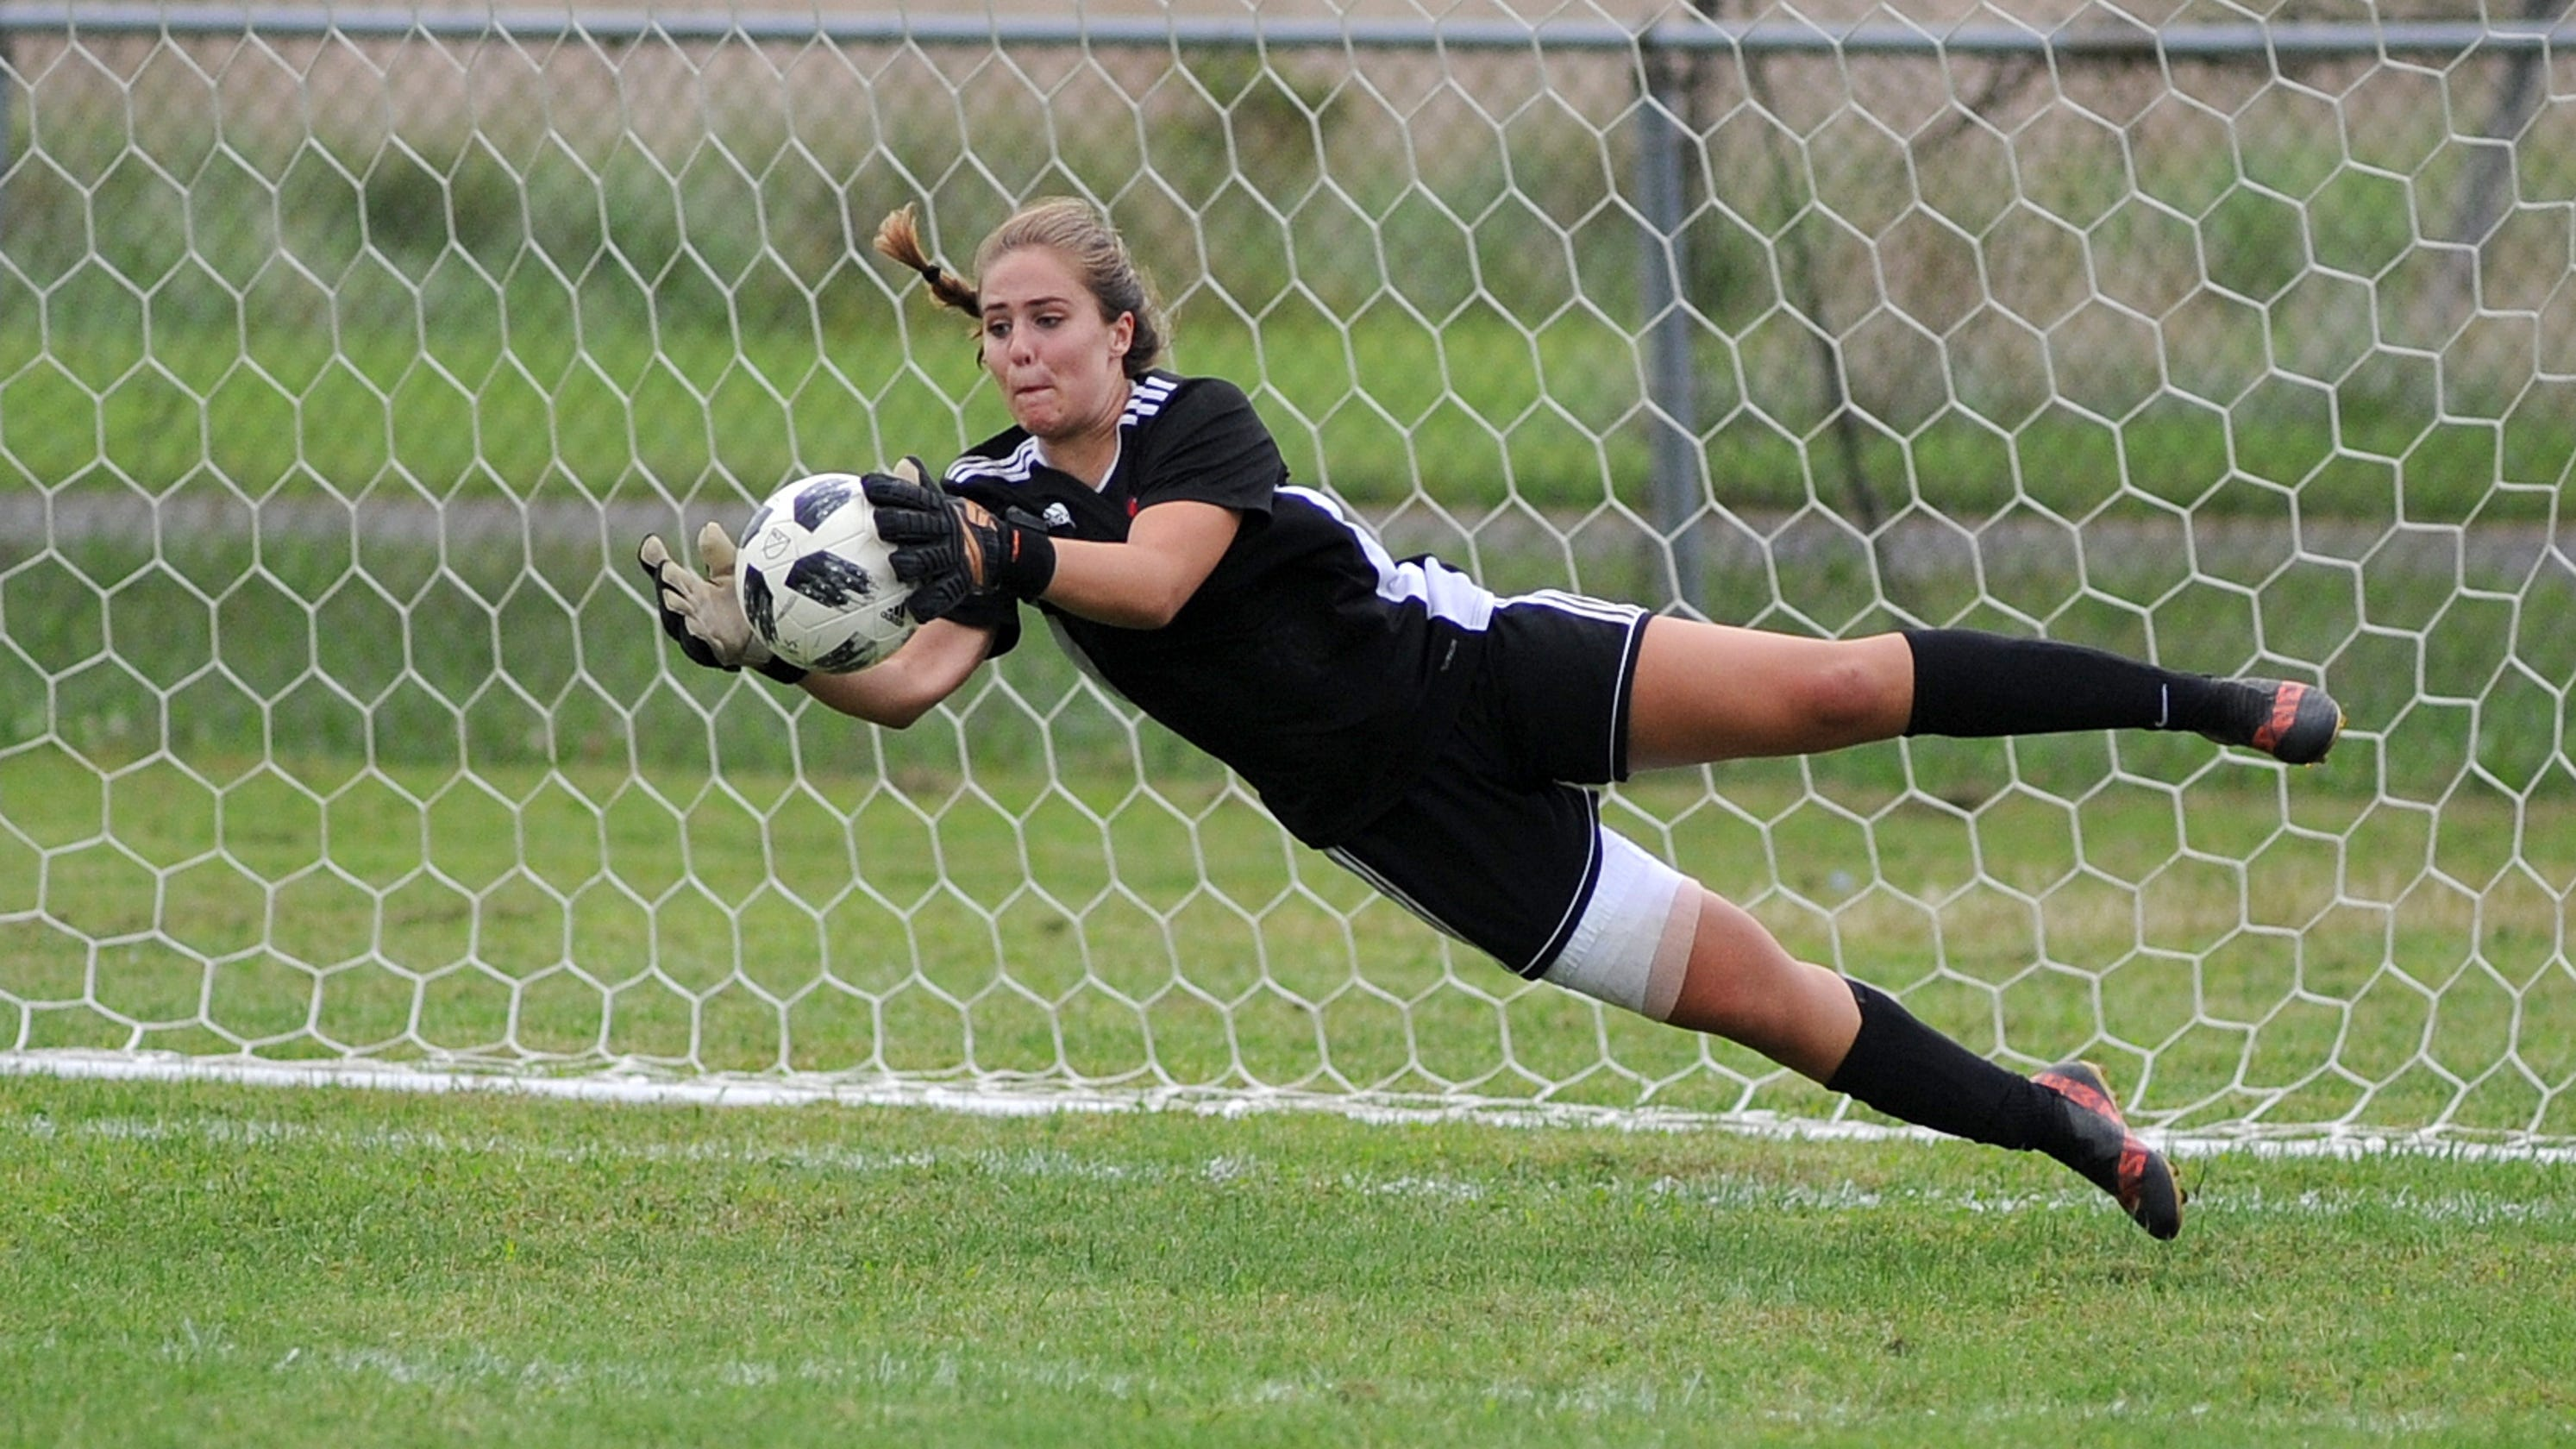 b666bc1a6 H.S. girls  soccer  Gilliano s star shines bright in third sport for Buena